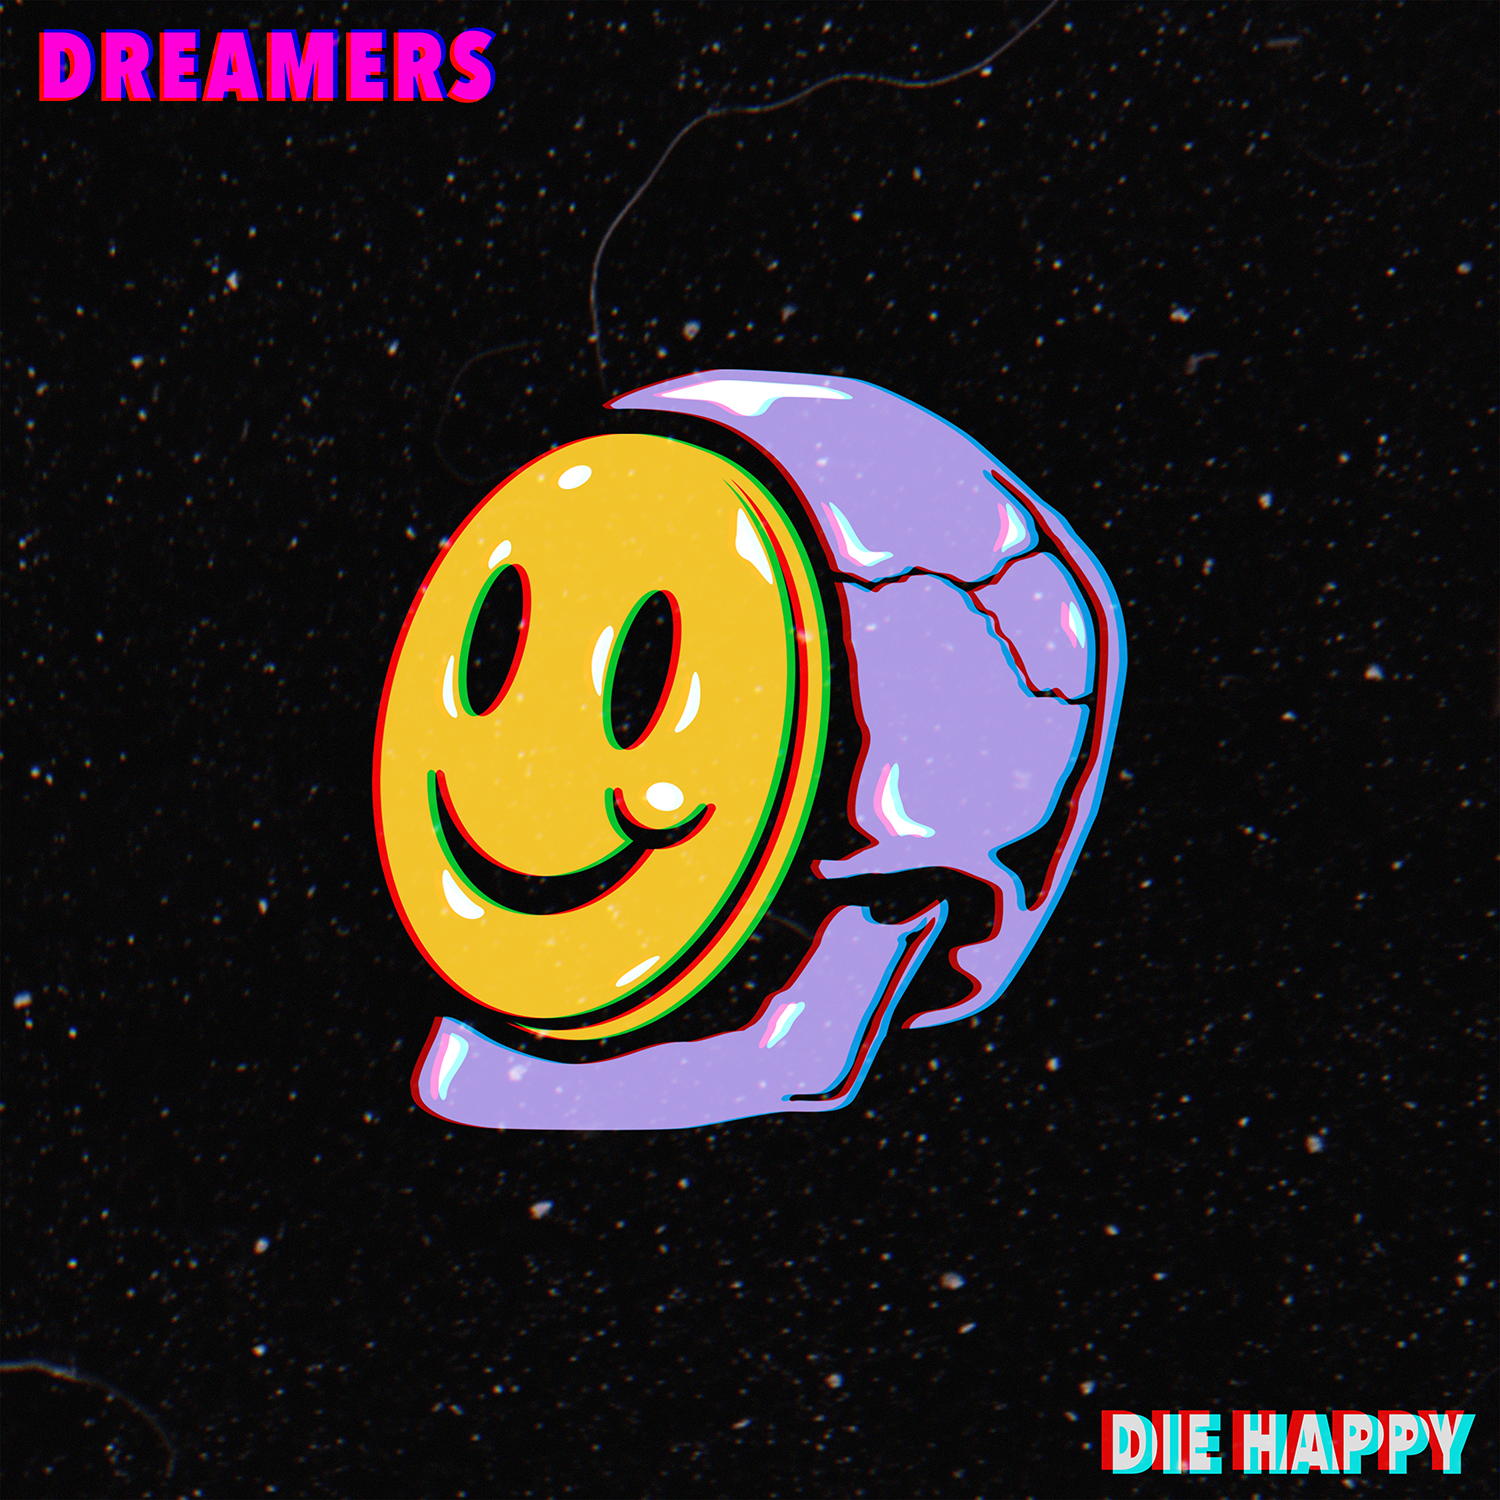 Dreamers_DieHappy.jpg